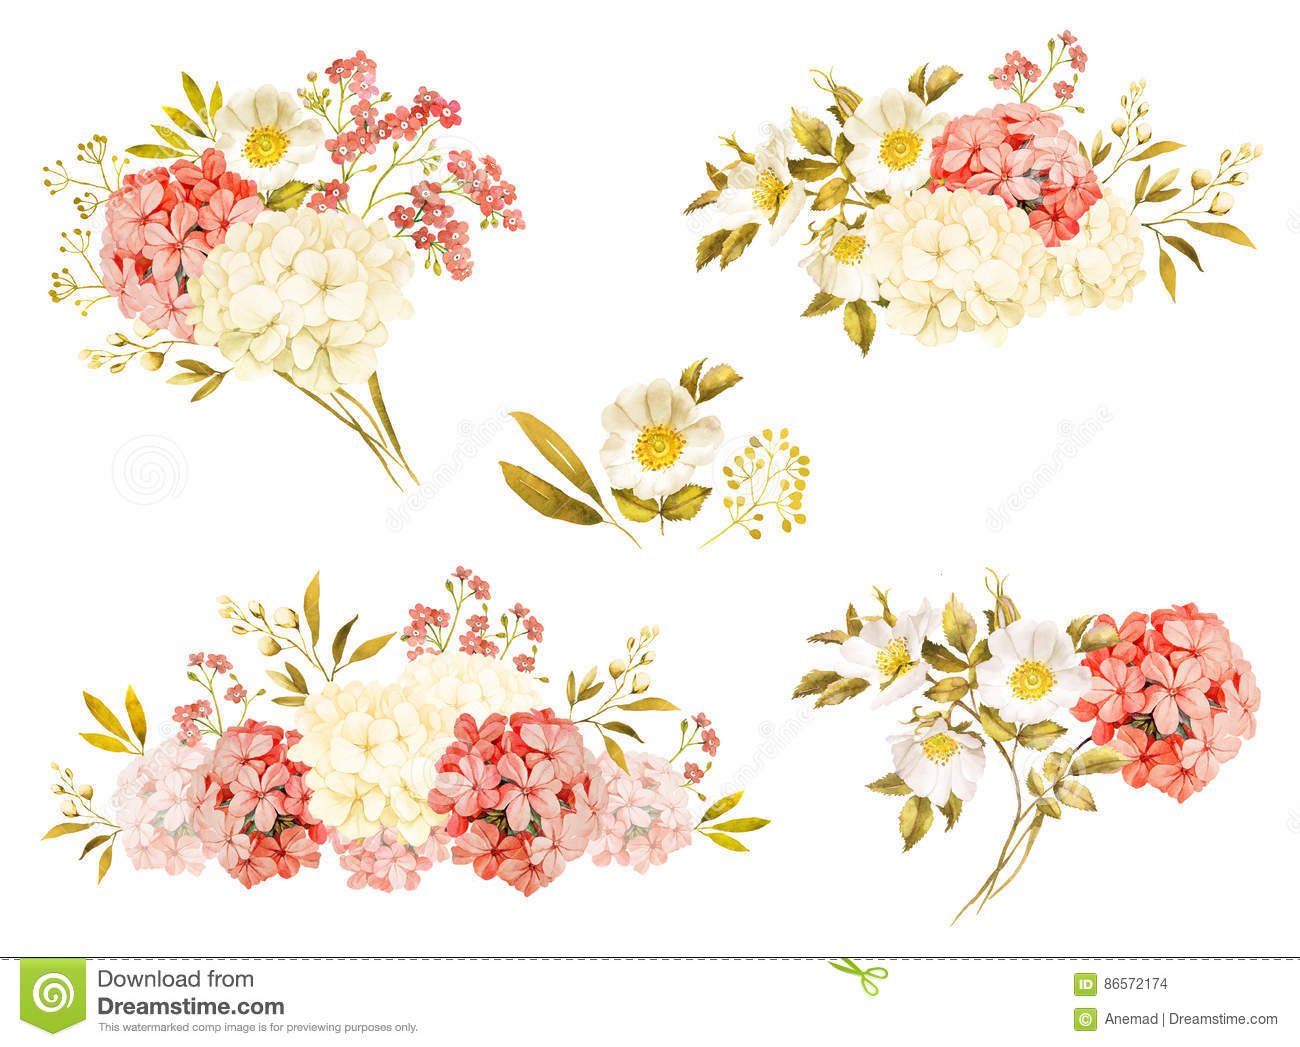 Pink white jasmine hydrangea rose flowers wedding watercolor stock pink white jasmine hydrangea rose flowers wedding watercolor izmirmasajfo